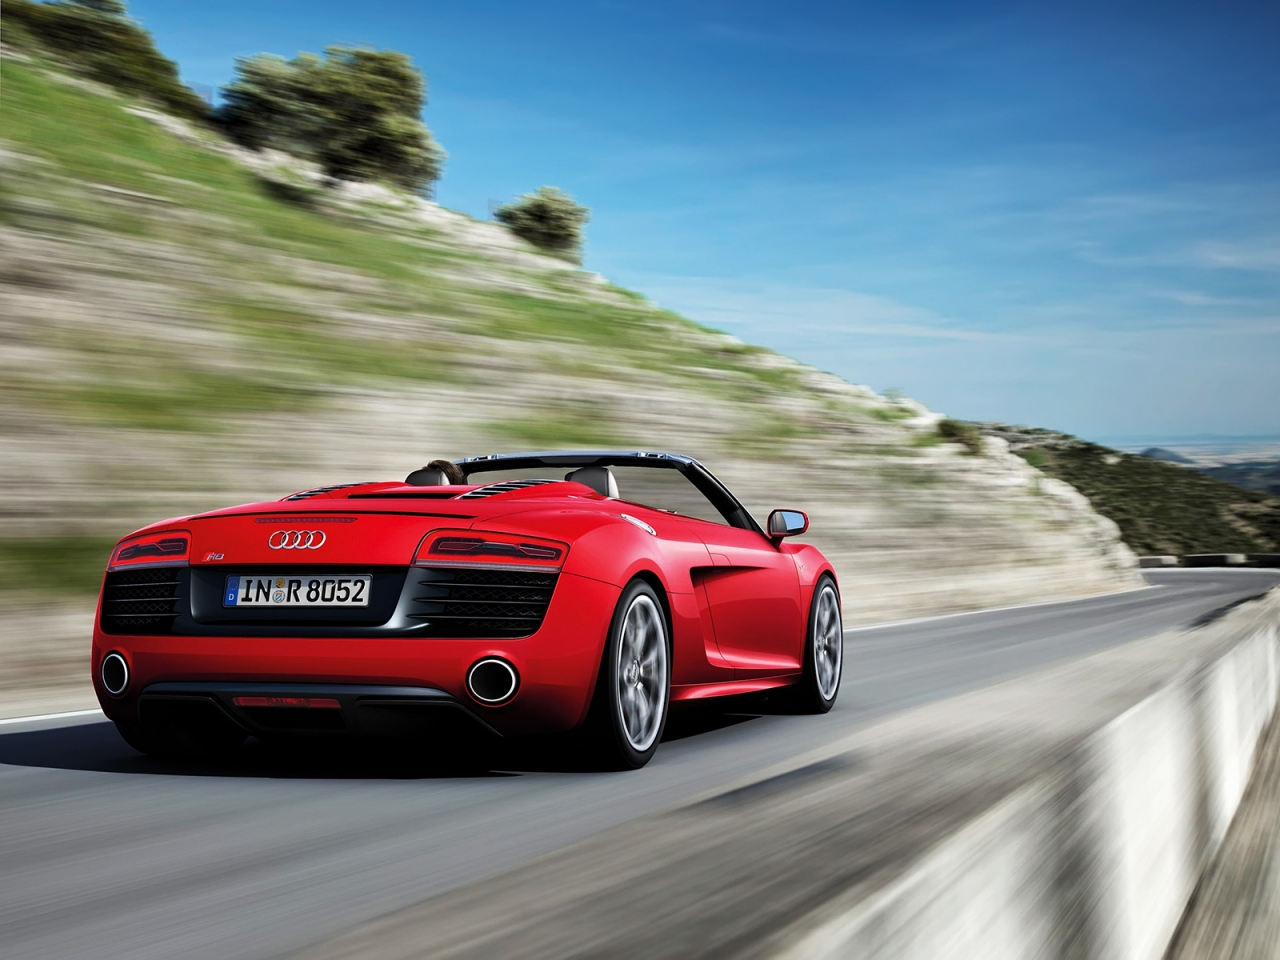 Audi R8 Spyder Speed for 1280 x 960 resolution